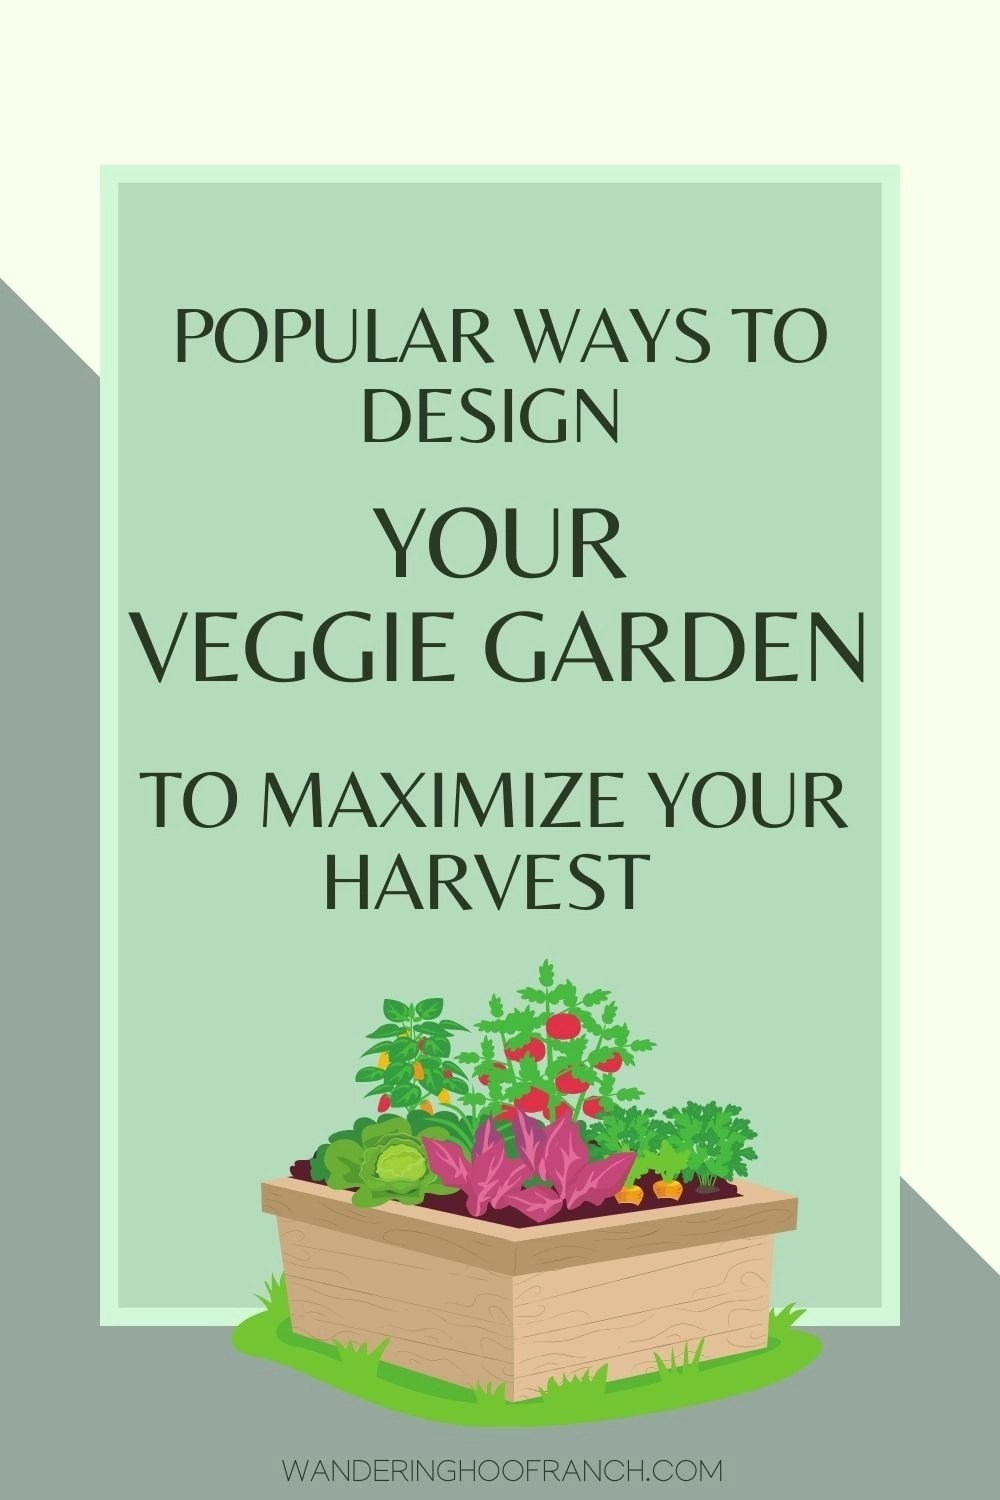 popular ways to design your backyard vegetable garden layout to maximize your harvest